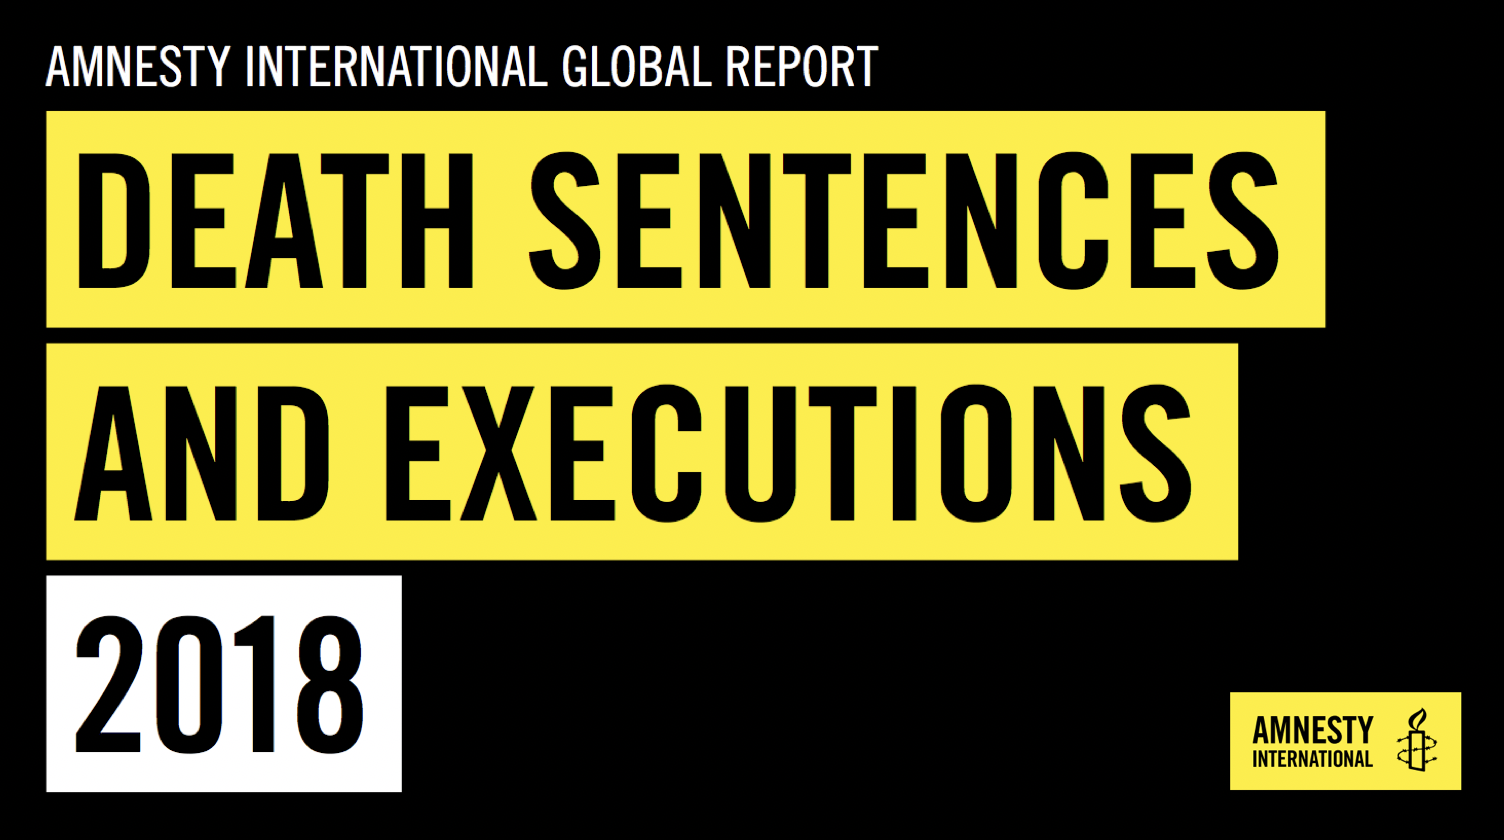 Amnesty-International-Global-Report-2018-death-sentences-executions-Kritisches-Netzwerk-Kumi-Naidoo-Todesstrafe-Todesurteile-death-penalty-Folter-torture-human-rights-Menschenrechte